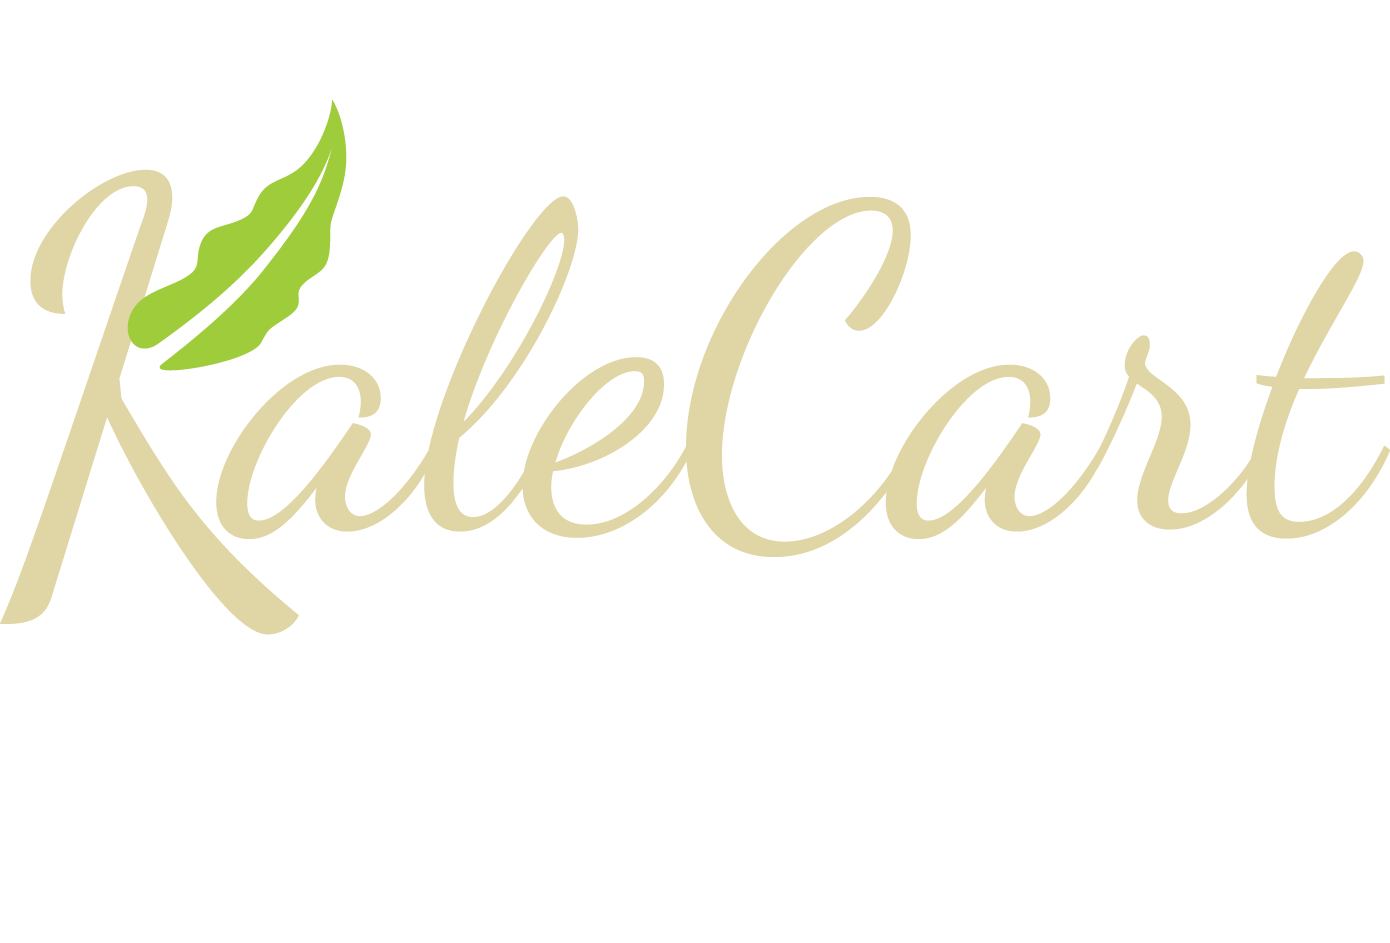 "Refreshments for this event provided by KaleCart:   A tasty new lunch delivery service happens each week in DTLA. Although you'll feel sinful, our plant-based, organic meals are made fresh daily for your healthy and delicious food rendezvous.   $5 OFF your next lunch with code "" SKY ""."